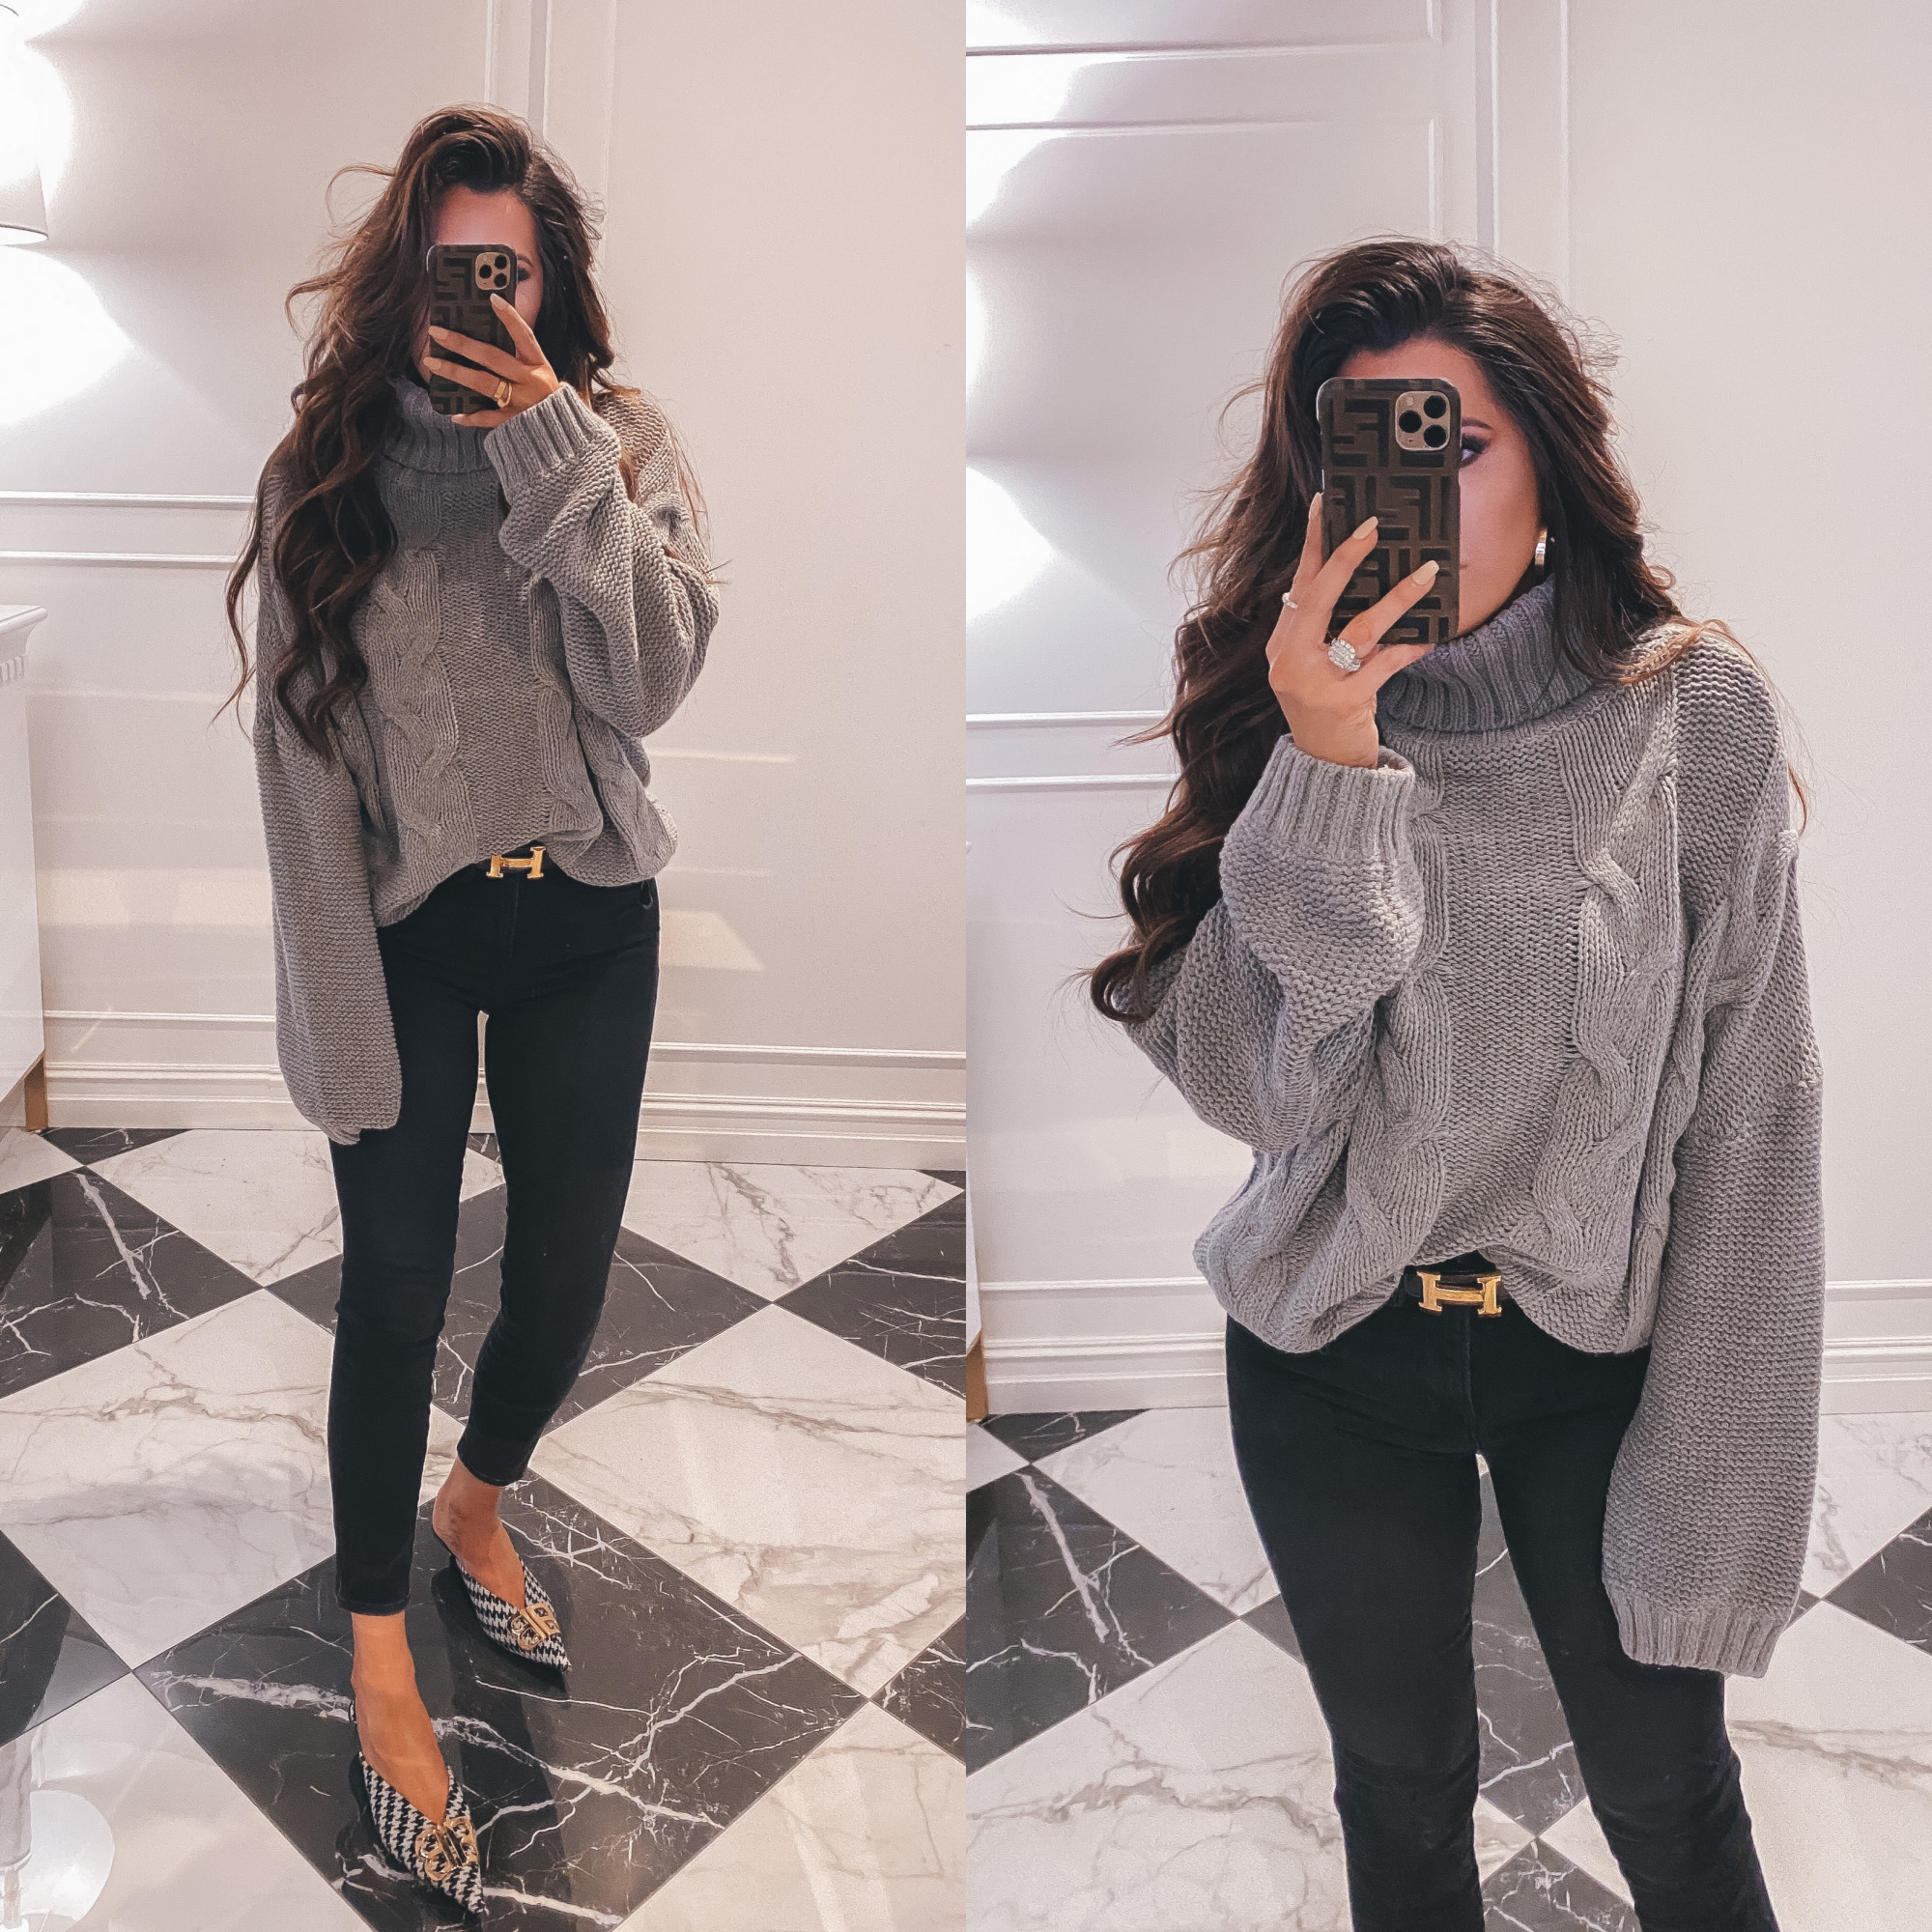 Thanksgiving Outfits by popular US fashion blog, The Sweetest Thing: image of Emily Gemma wearing a oversized mock neck sweater, Hermes belt, Good American jeans, Balenciaga shoes, Cartier rings and bracelets, Bracha necklace and The Styled Collection earrings.